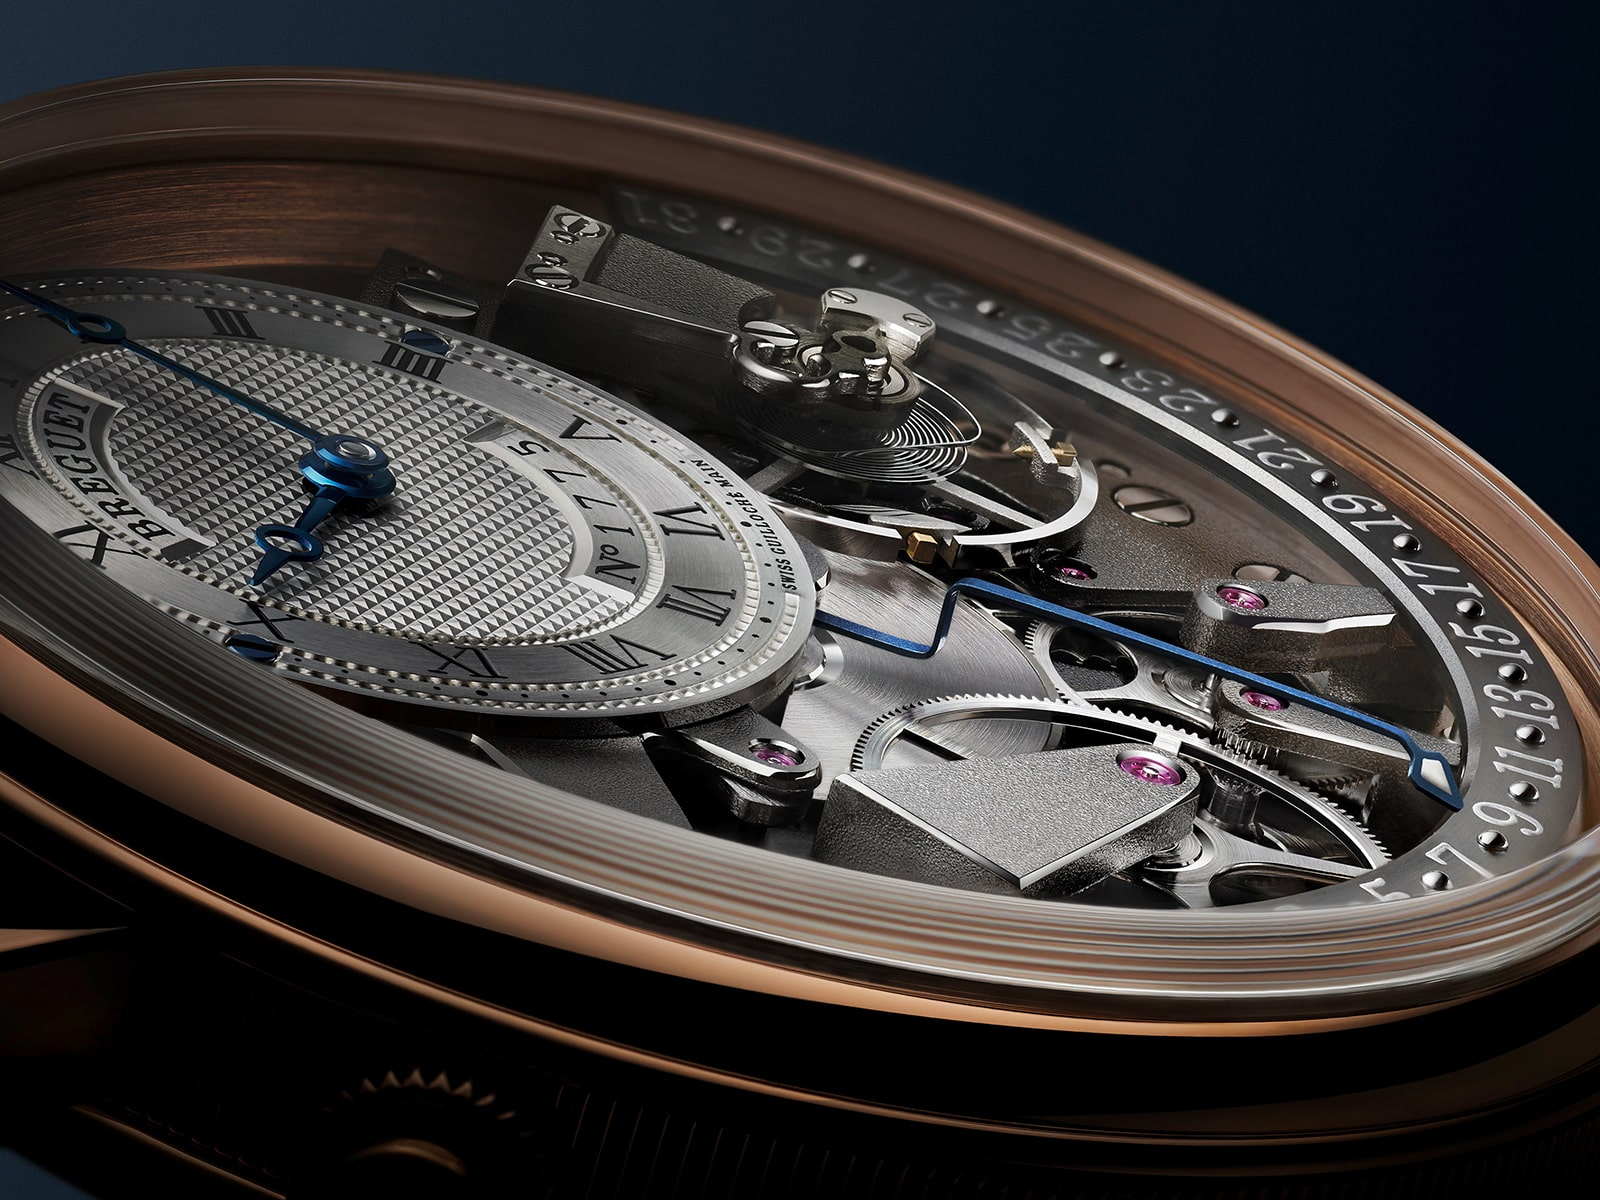 7597br-g1-9wu-breguet-tradition-quantieme-retrograde-7597-rose-gold-4.jpg